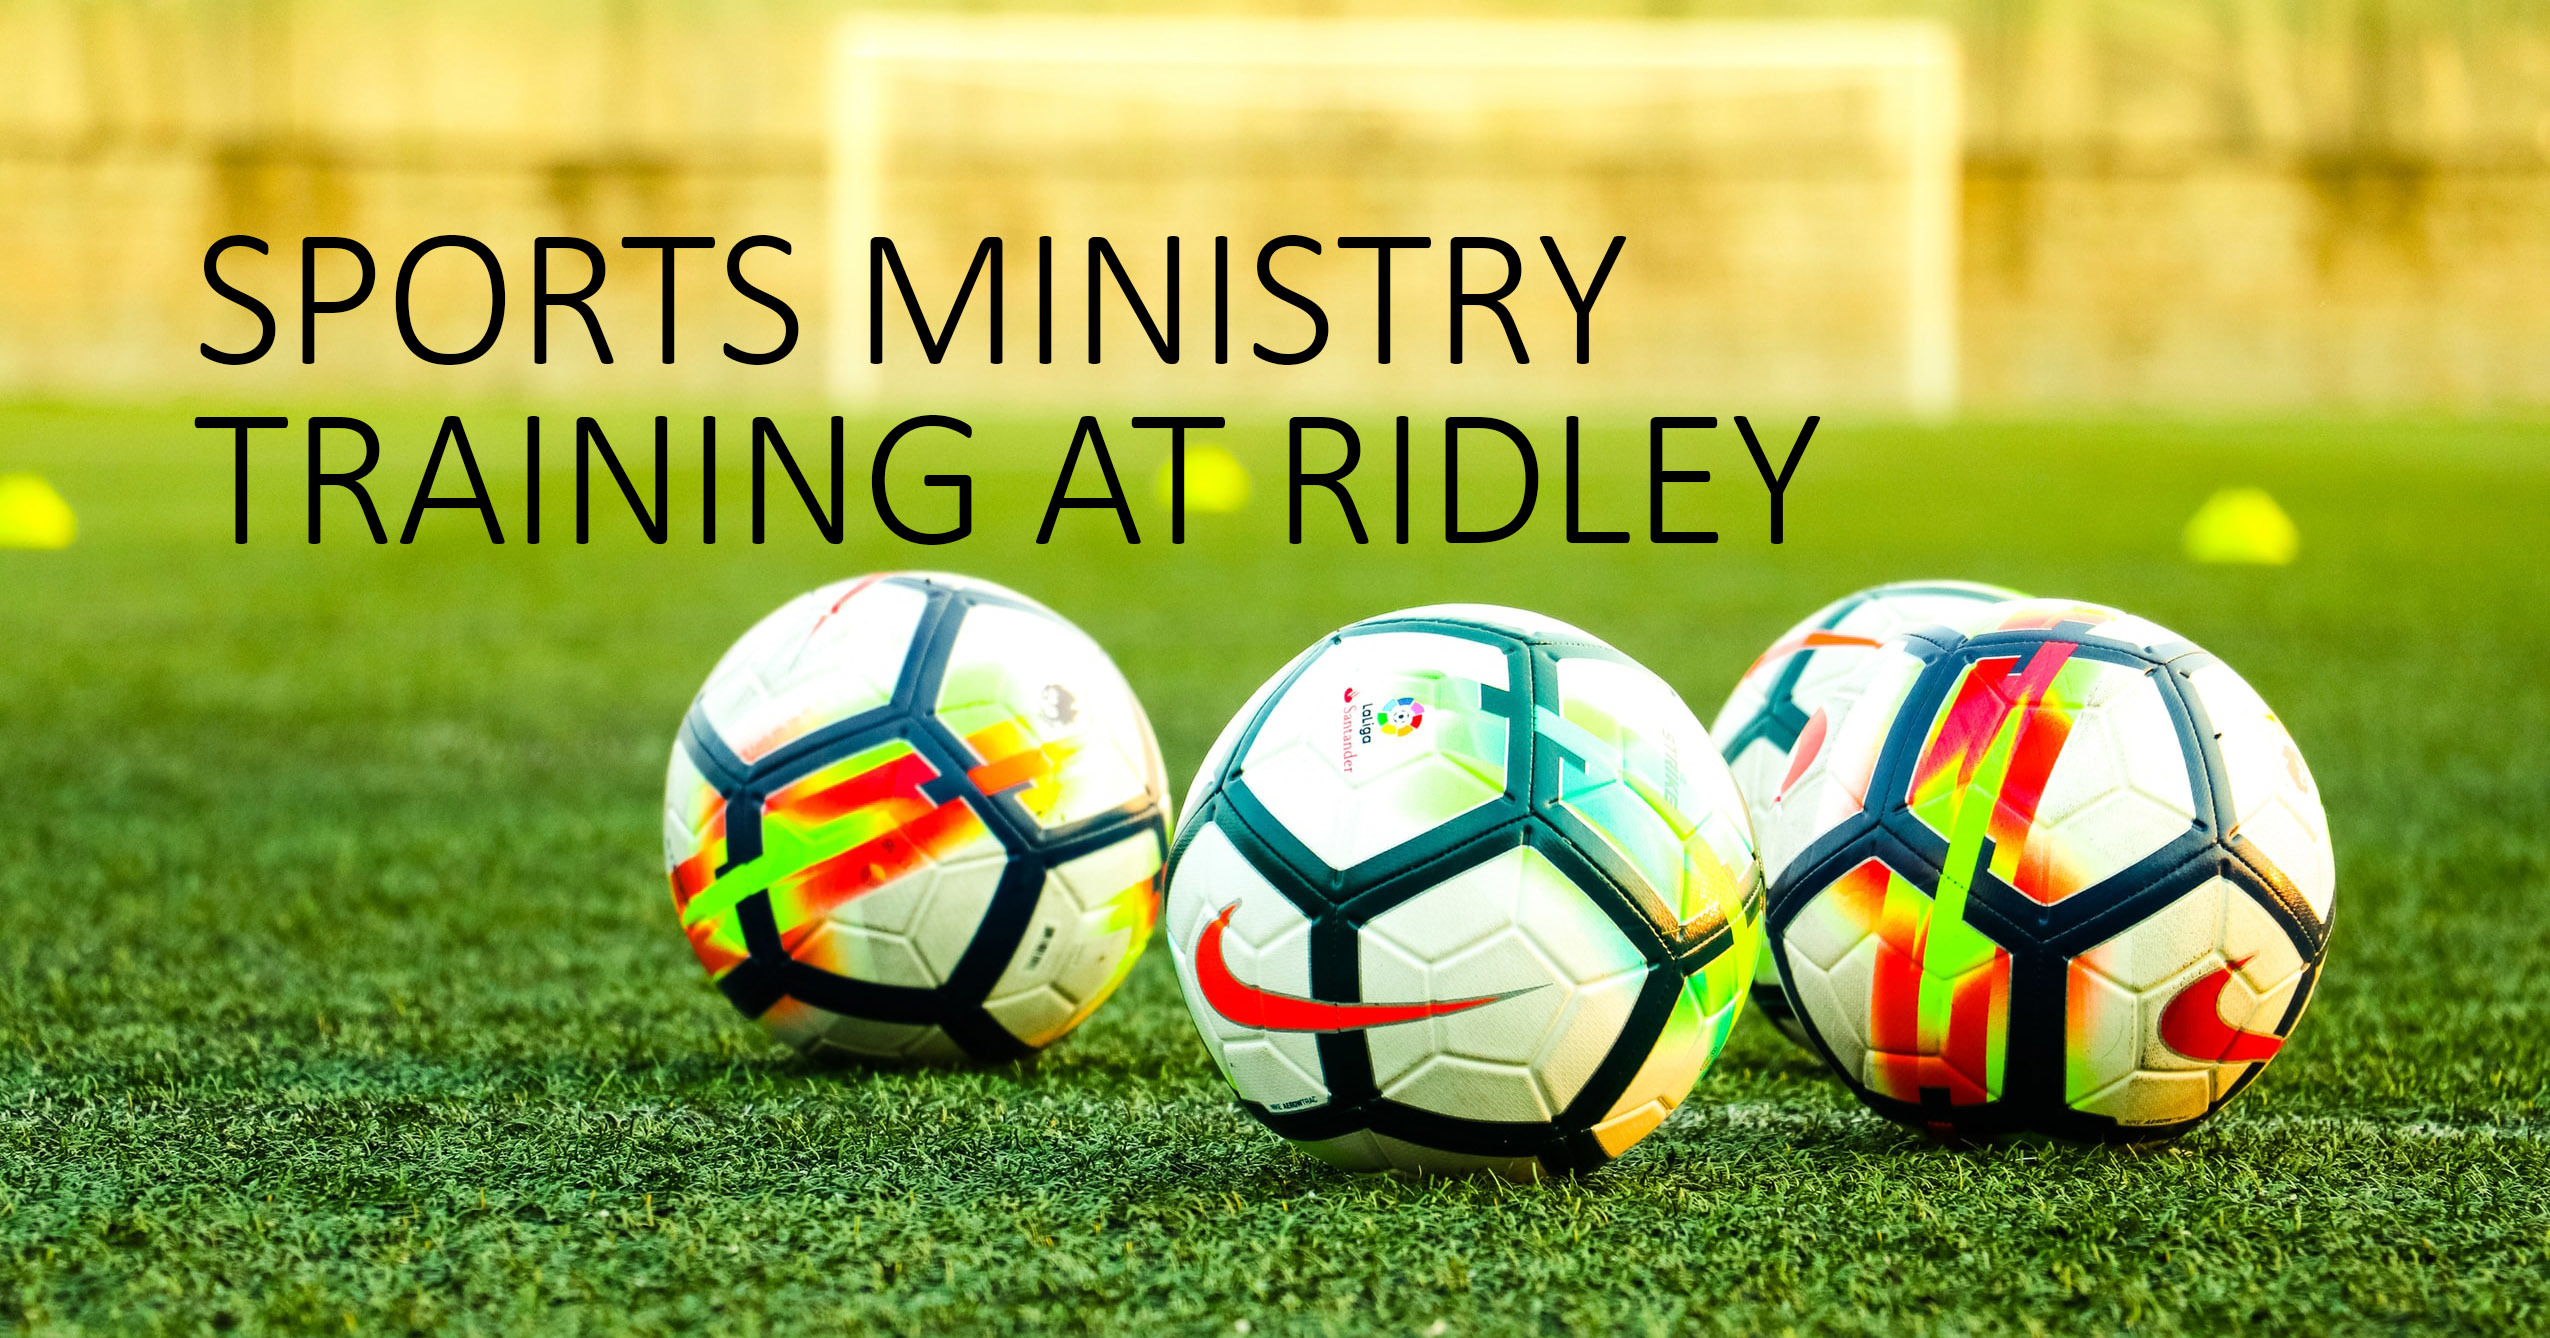 Click to find out more about training for sports ministry at Ridley Hall